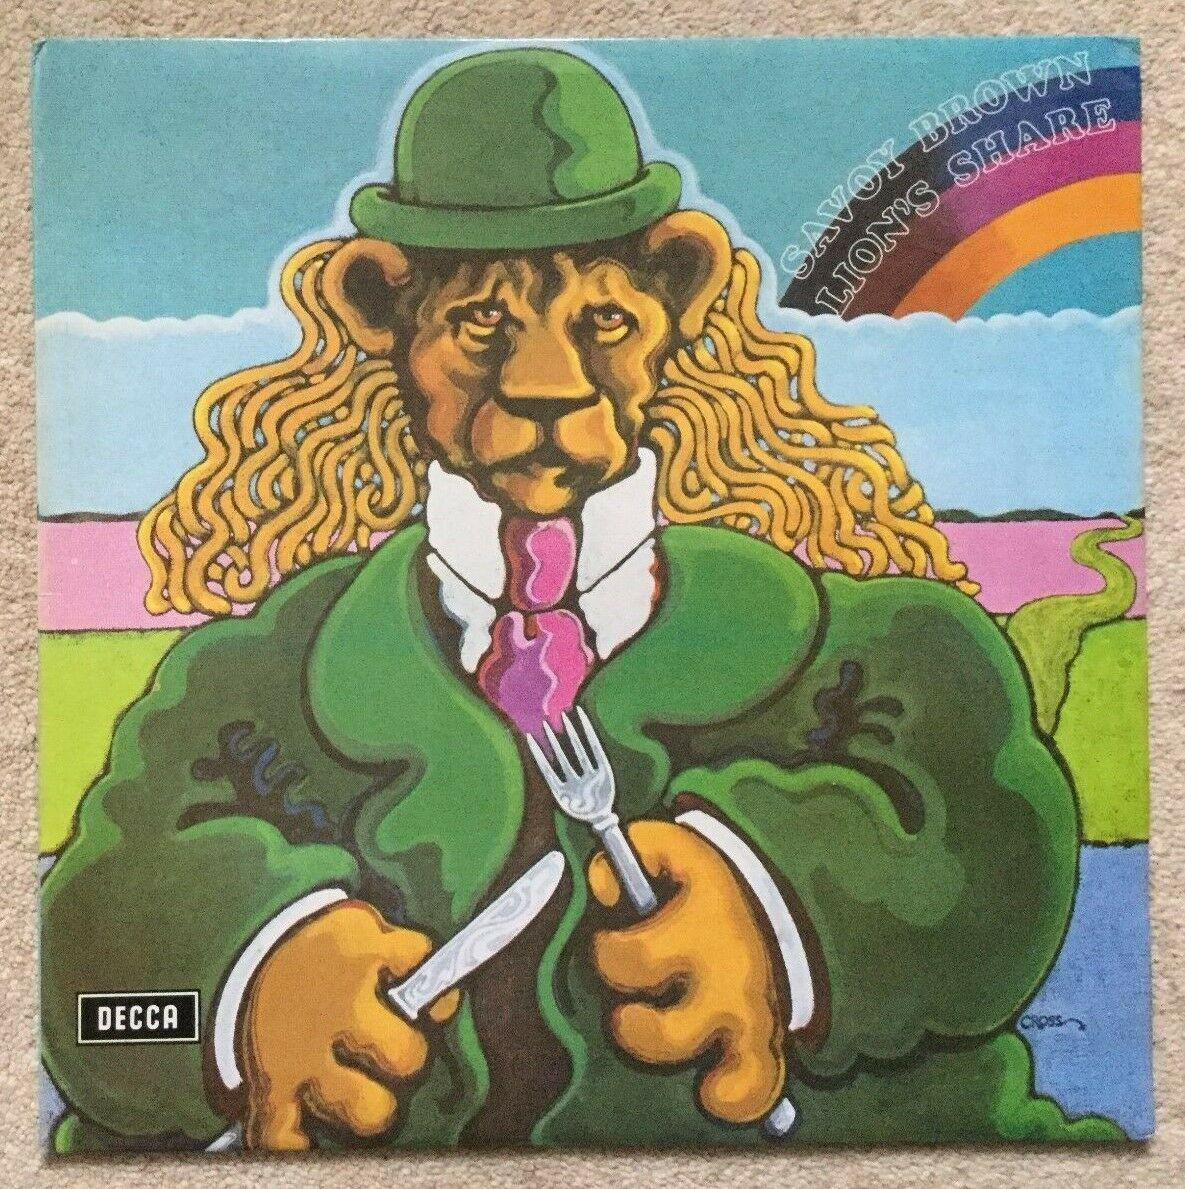 SAVOY BROWN – LIONS SHARE UK LP DECCA SKL 5152